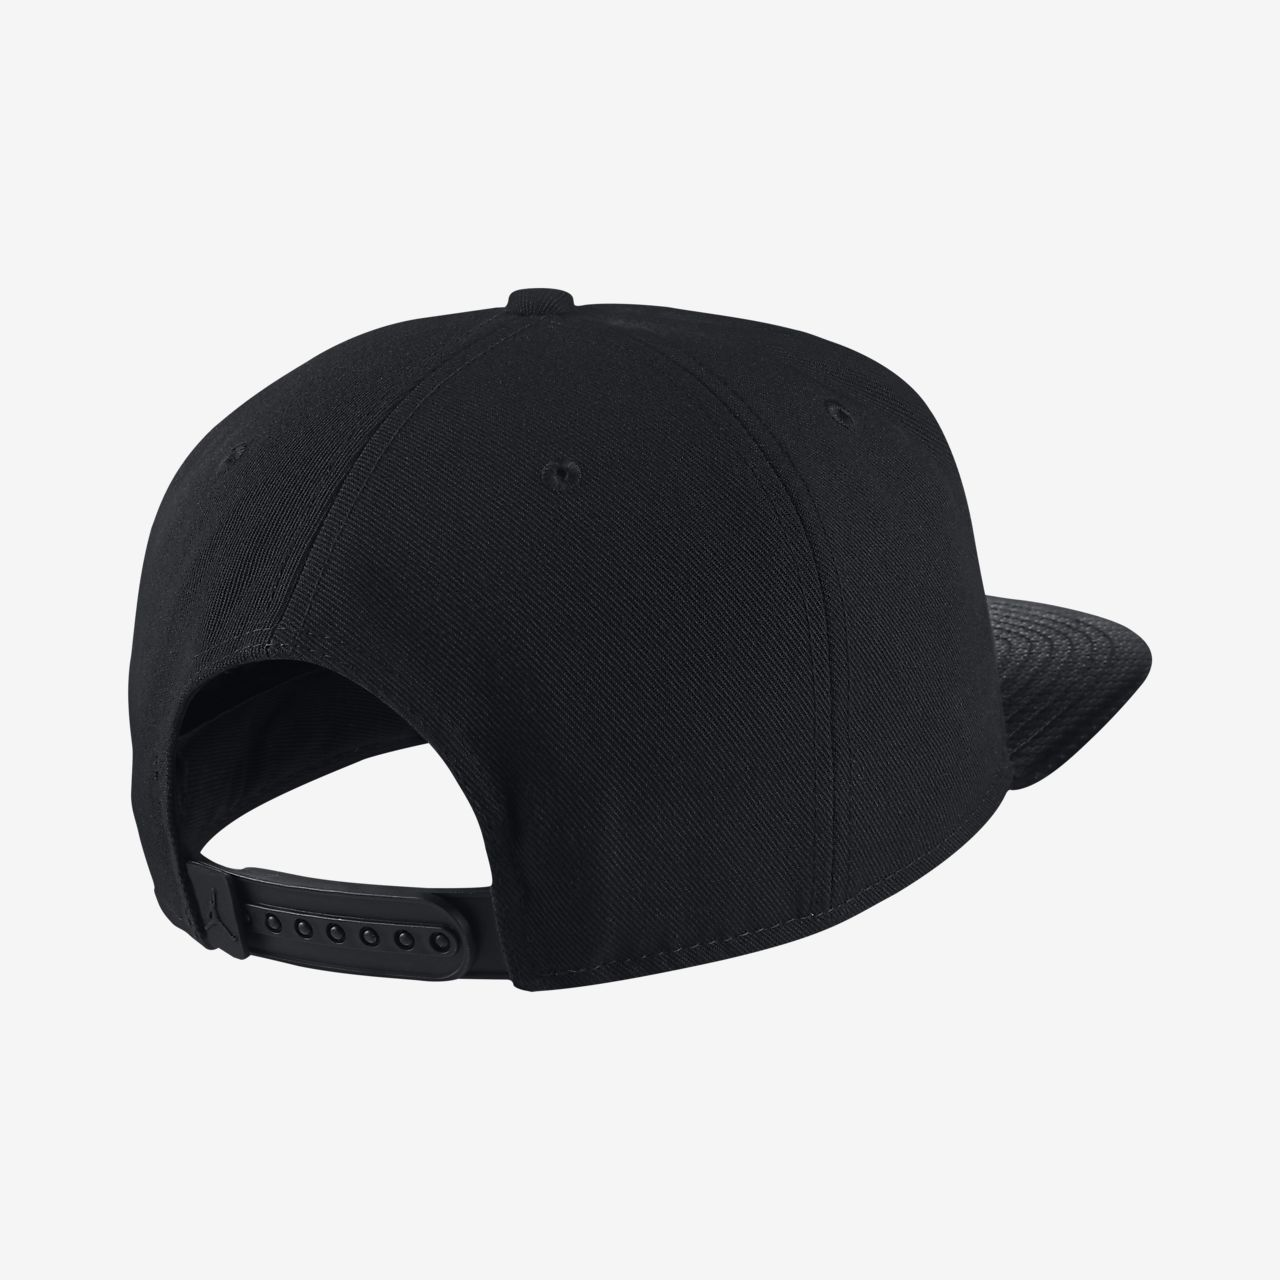 8219303ae49 Jordan Jumpman Pro AJ 10 Adjustable Hat. Nike.com SG